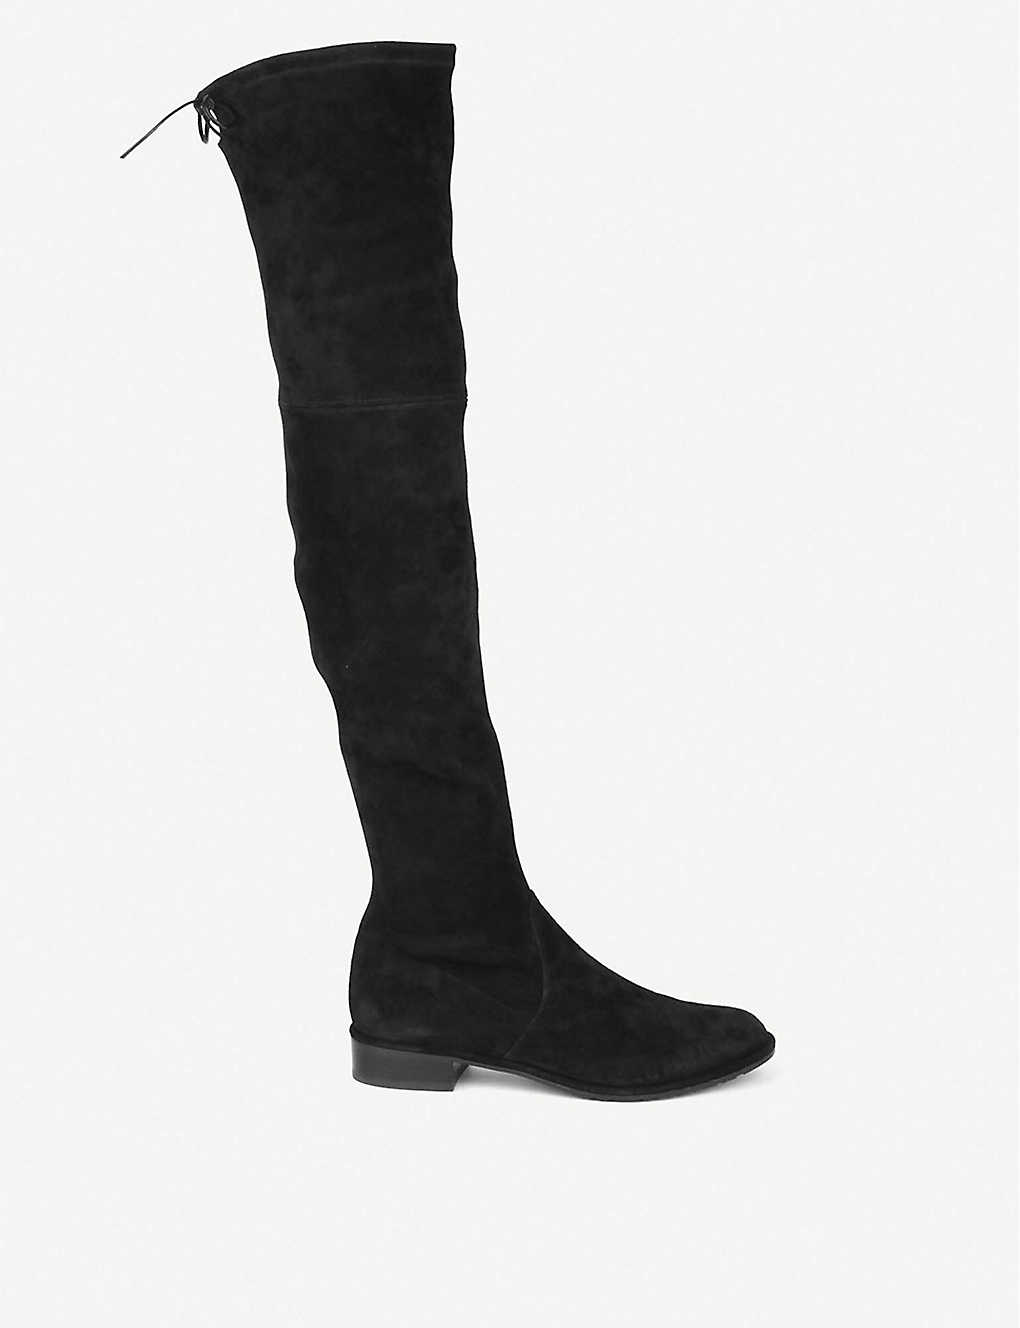 2995a27aa15 STUART WEITZMAN - Lowland suede thigh boots